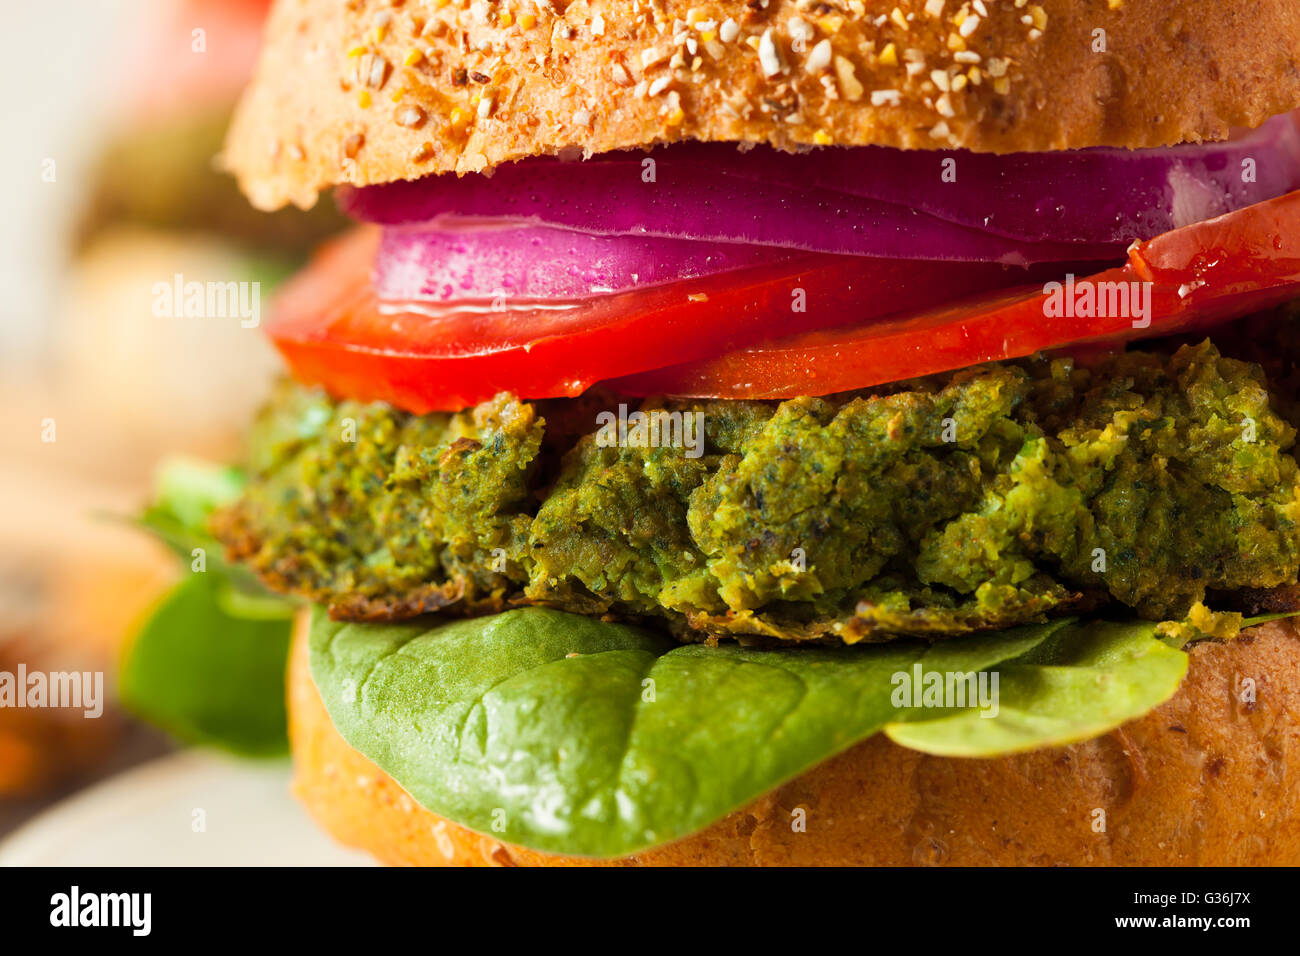 Homemade Green Vegan Burgers with Lettuce and Tomato - Stock Image